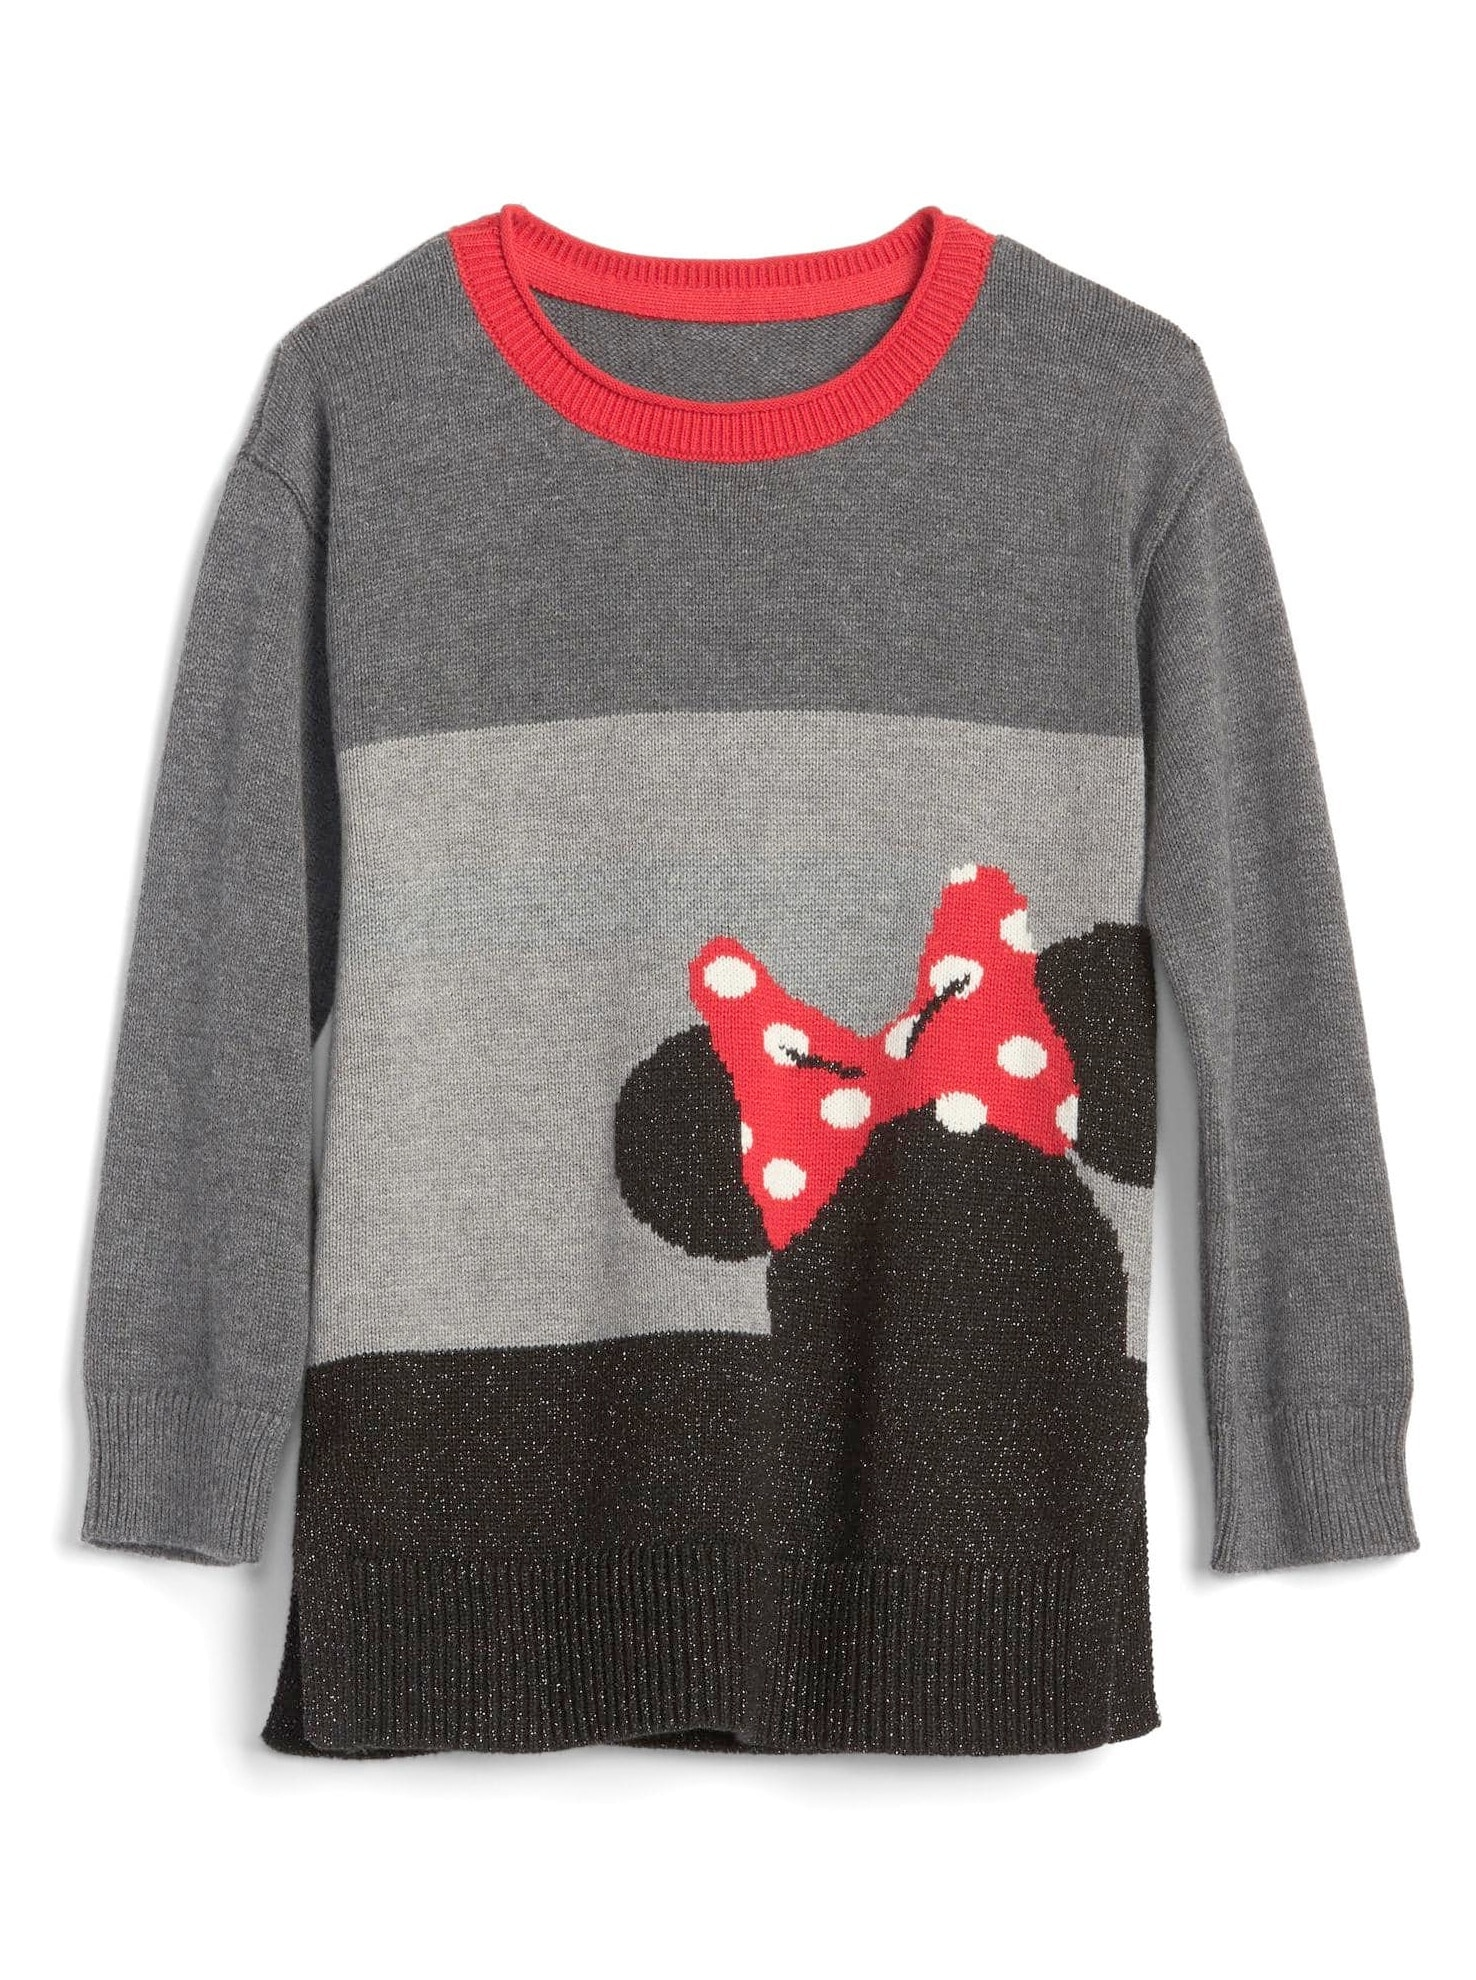 Minnie Mouse Sweater Pattern